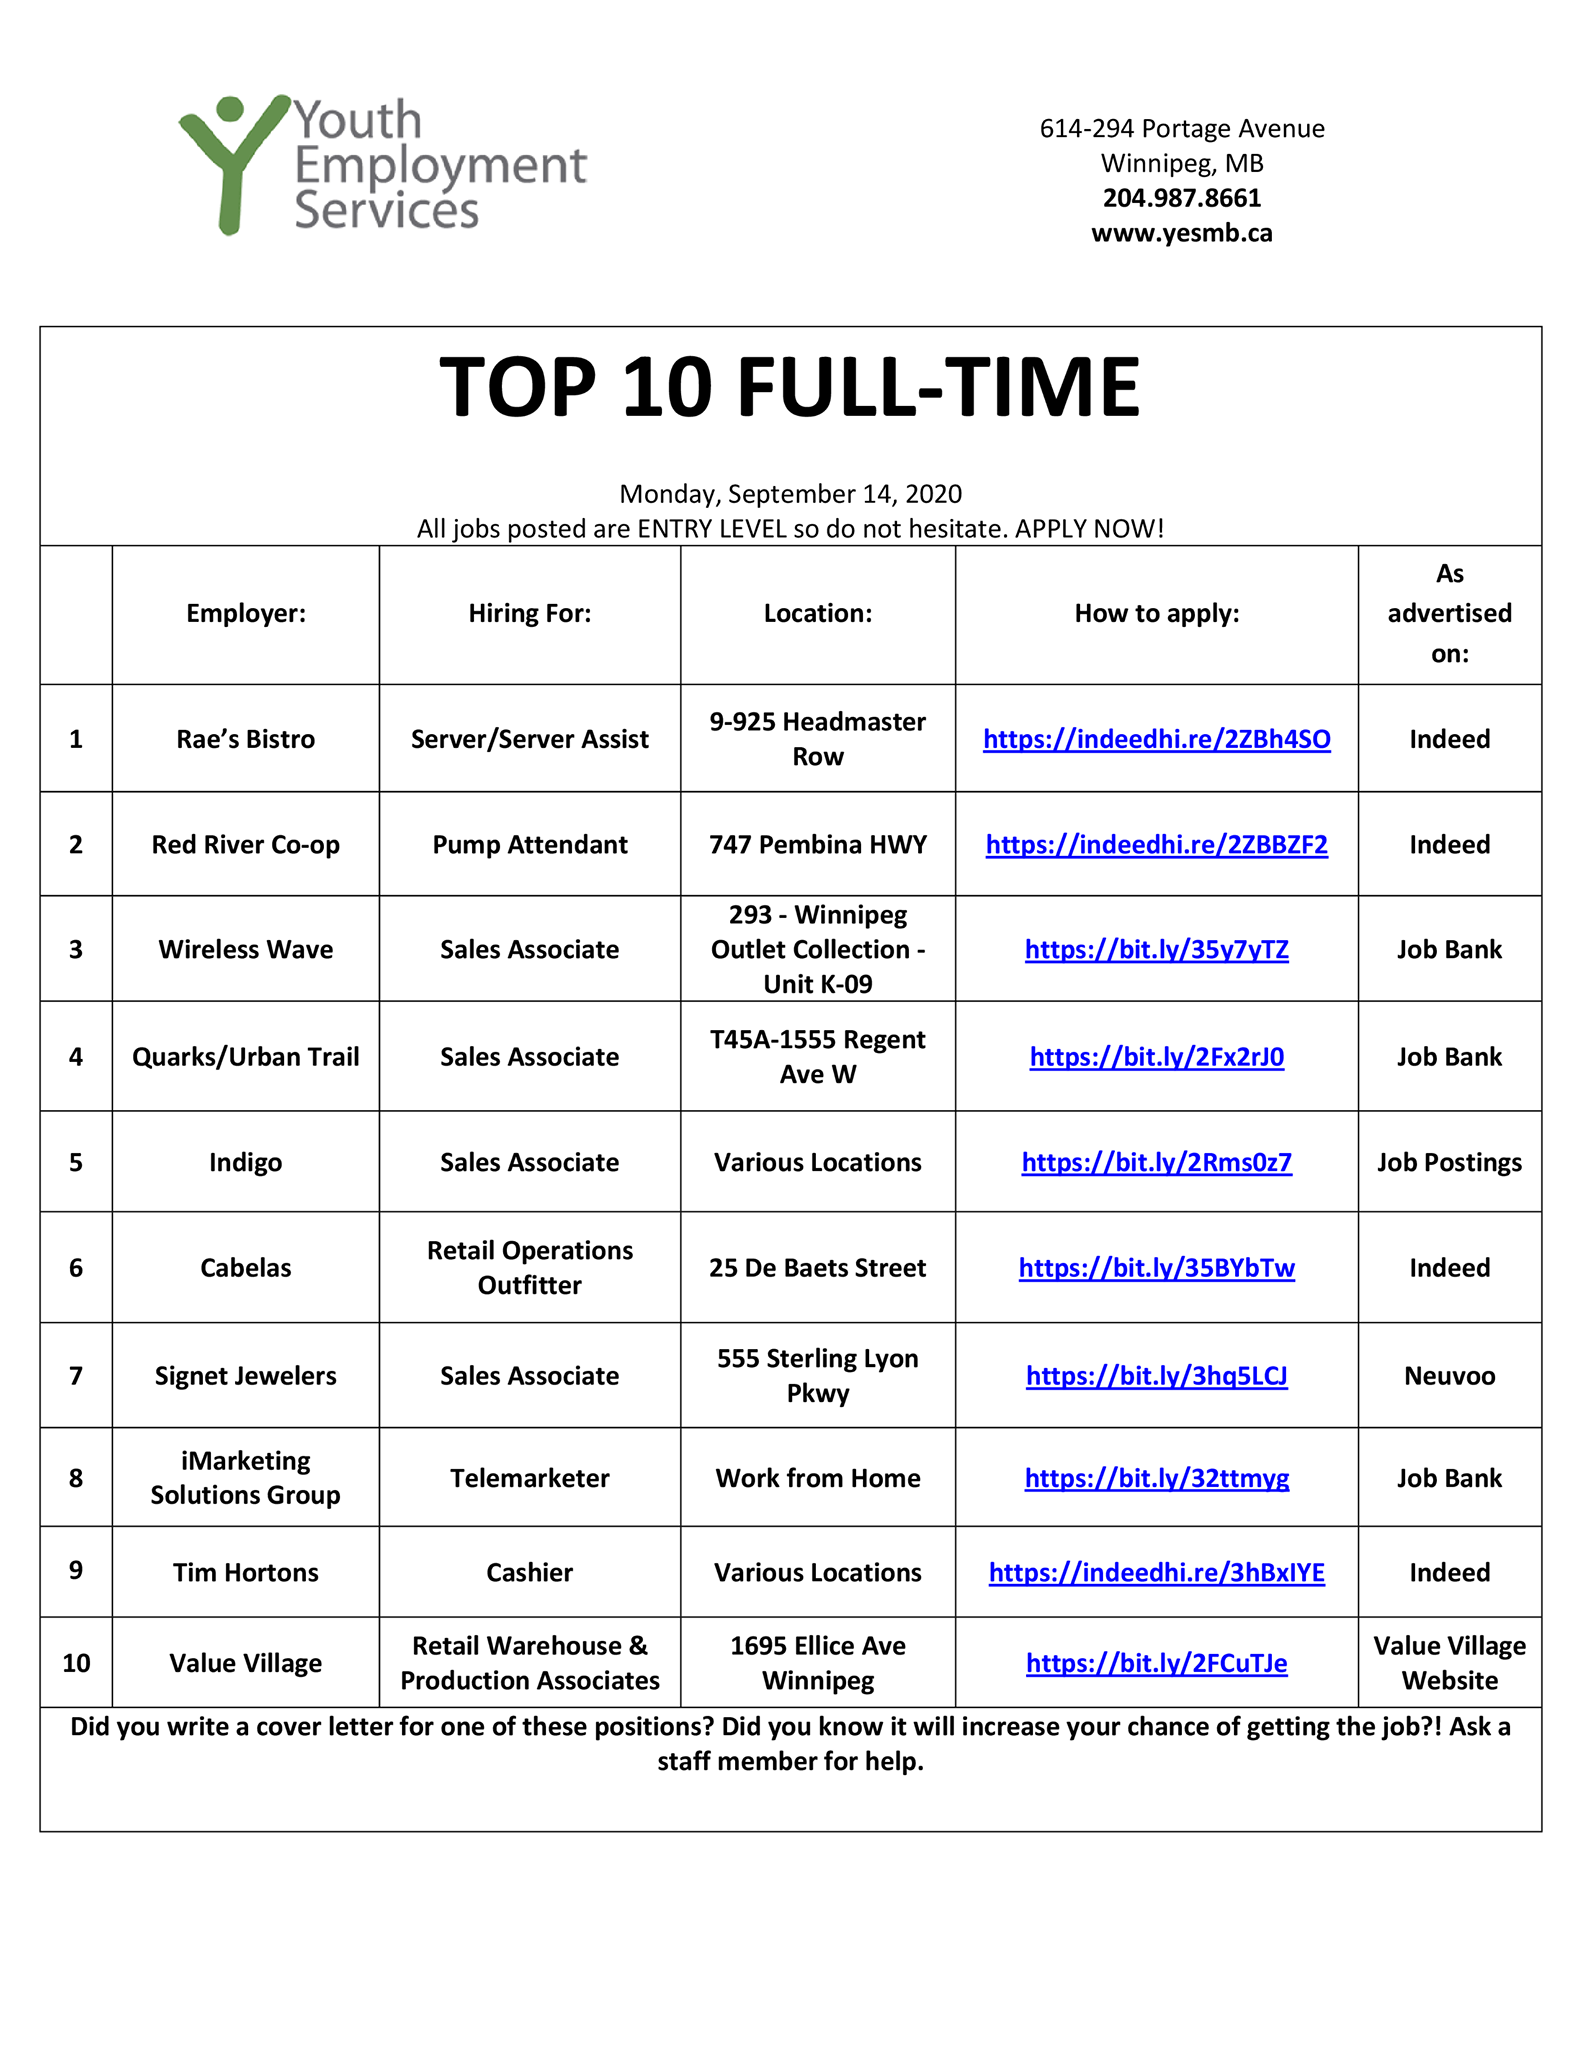 Jobs That Hire At 14 Part Time Near Me